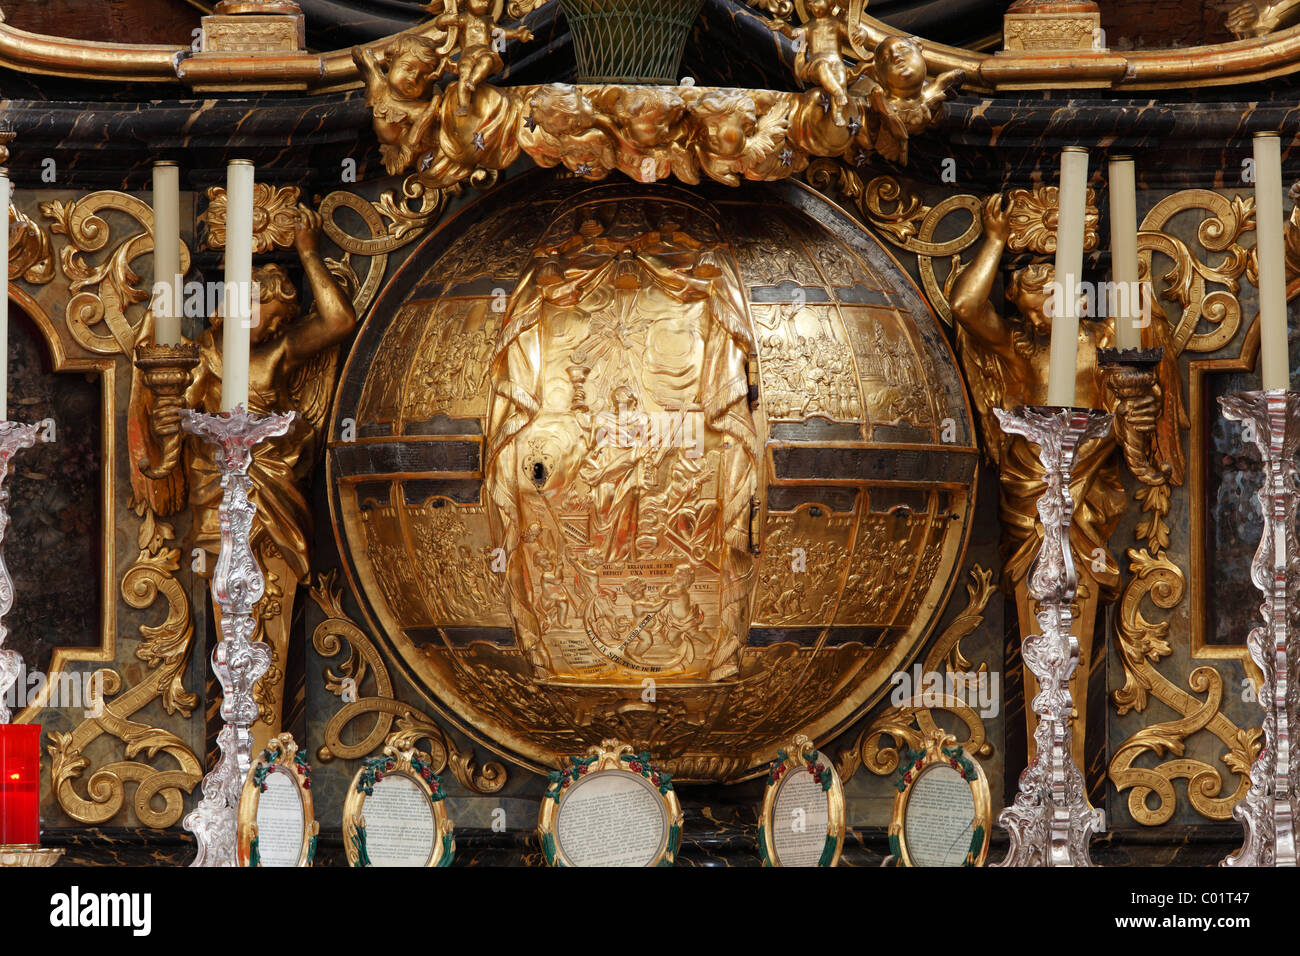 Tabernacle shaped like a globe on the main altar of the abbey church, Duernstein, Wachau valley, Waldviertel region - Stock Image